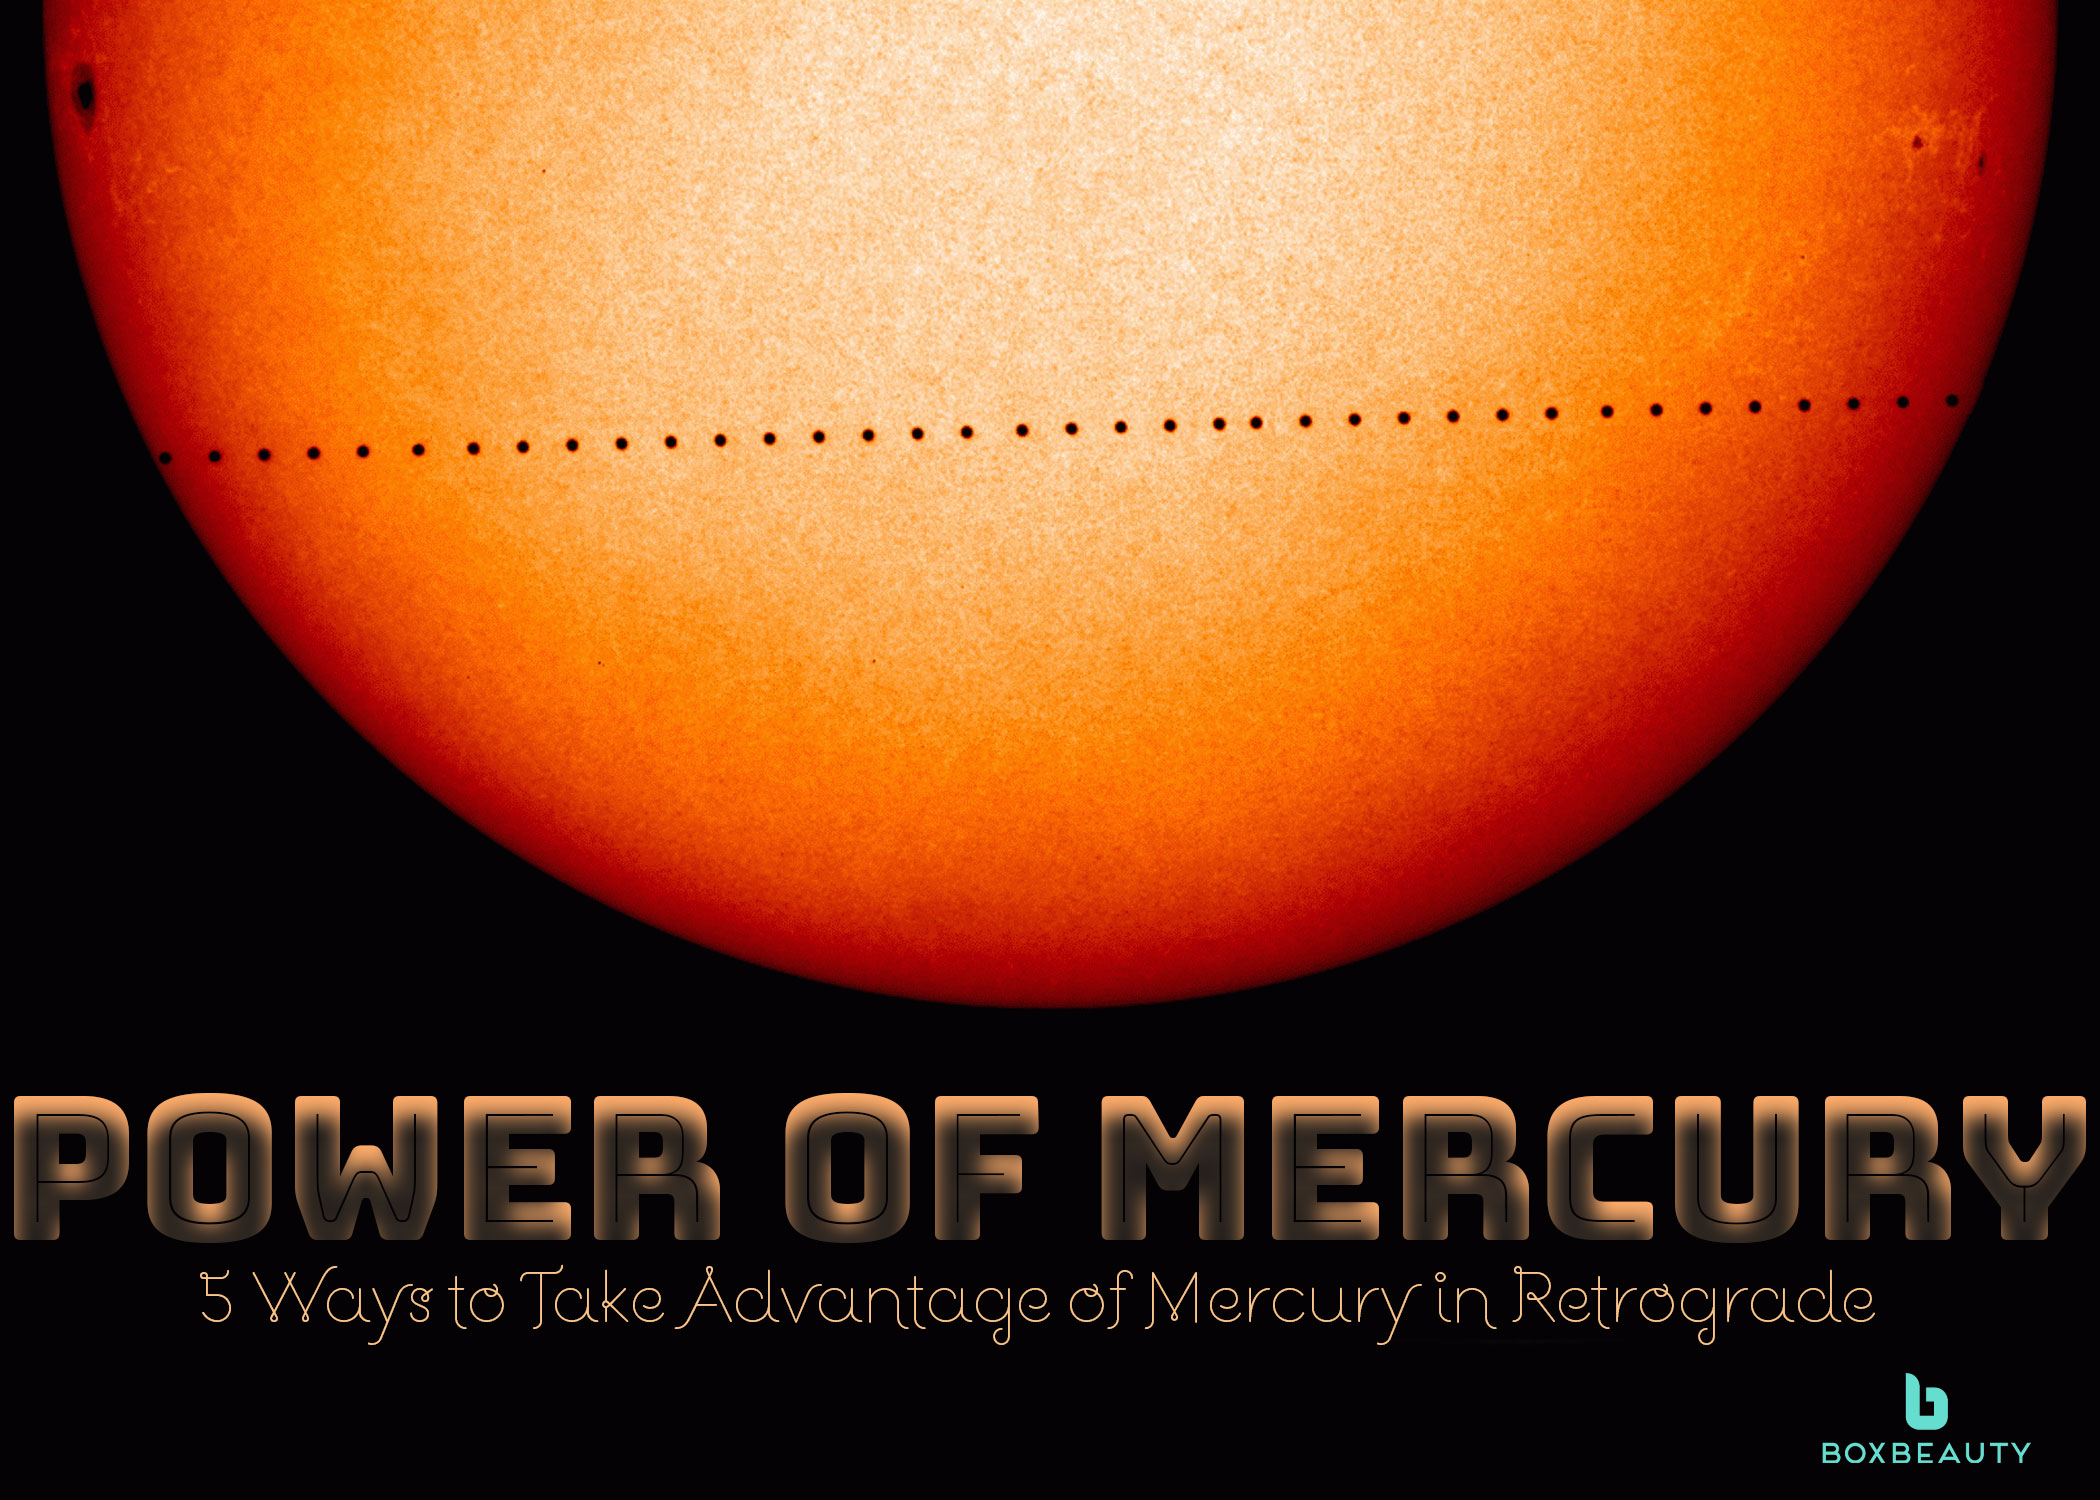 Power of Mercury: 5 Ways to Take Advantage of Mercury in Retrograde